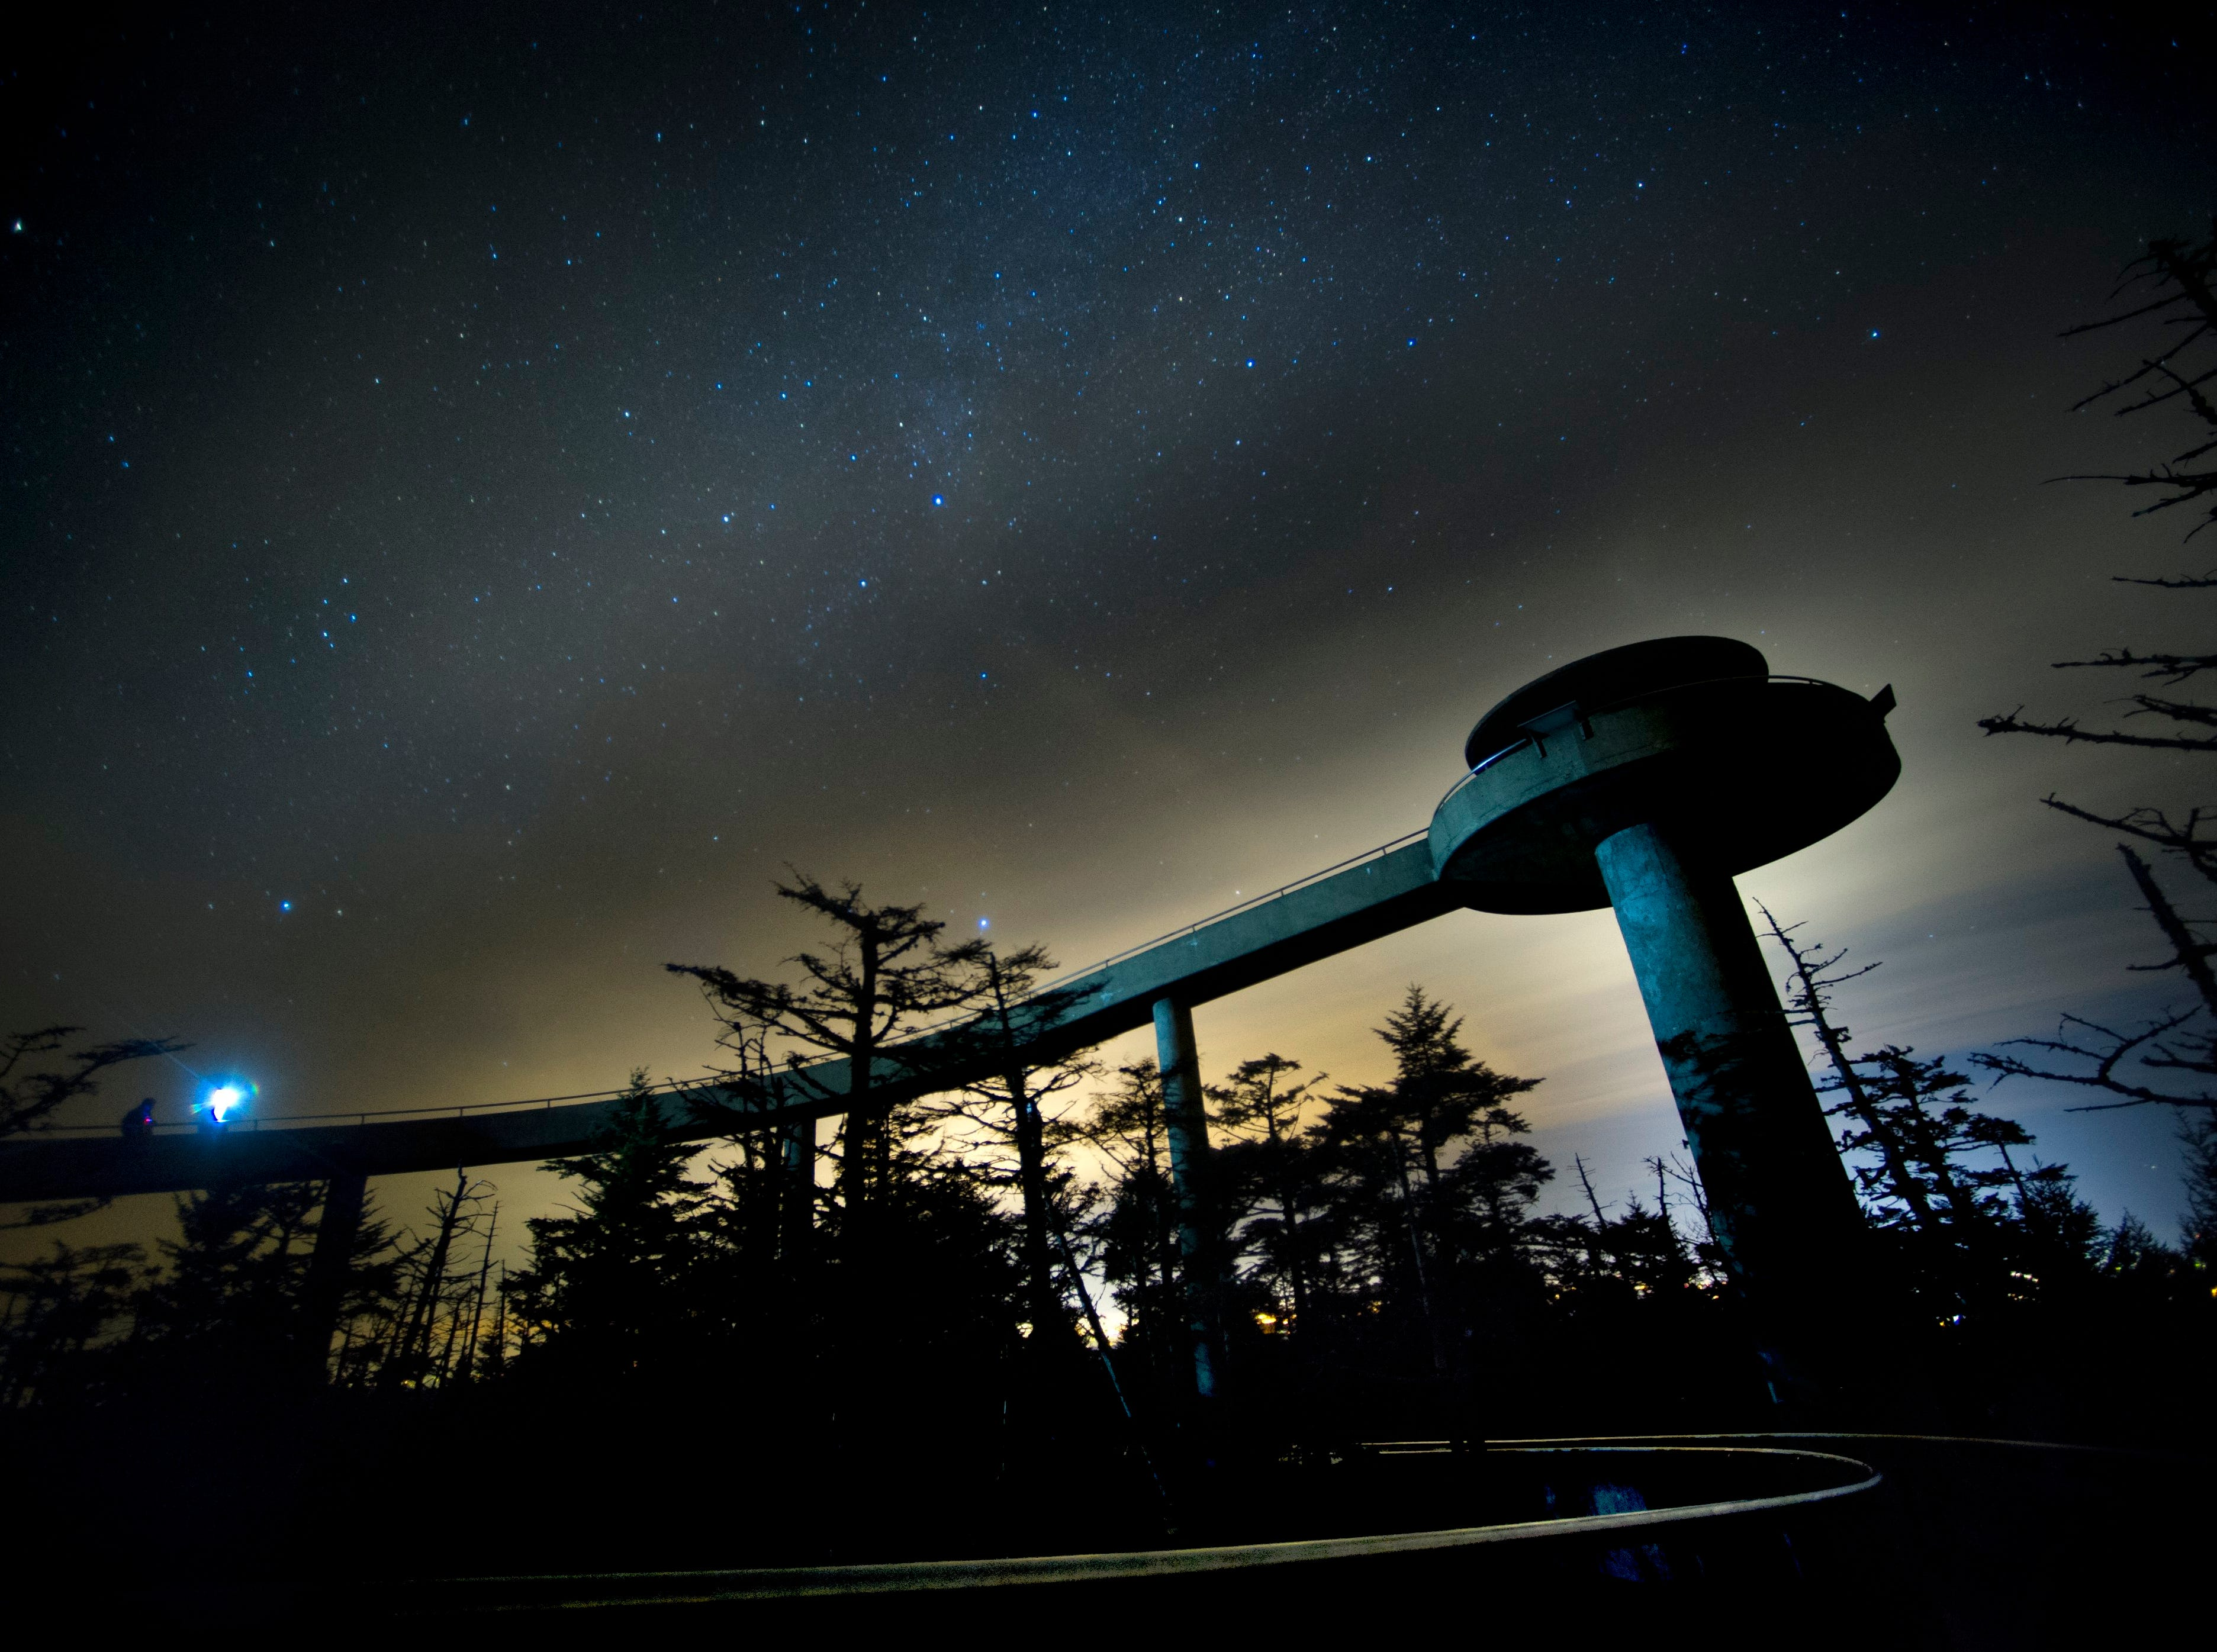 """Visitors Mike Henry of Ann Arbor, Mich. and Matt Hutton of San Luis Obispo, Calif. round the walkway to the Clingmans Dome observation tower beneath starry autumn skies on Saturday, Nov. 30, 2013 in the Great Smoky Mountains National Park. The two made their nighttime stop at Clingmans while on a trip to visit all the """"high points"""" in the continental U.S. At 6,643 feet high, Clingmans Dome is the third highest mountain east of the Mississippi, and the highest point in Tennessee. The site remains open year-round, but the seven-mile paved road leading to Clingmans closes during winter, and will reopen Apr. 1. (ADAM LAU/NEWS SENTINEL)"""